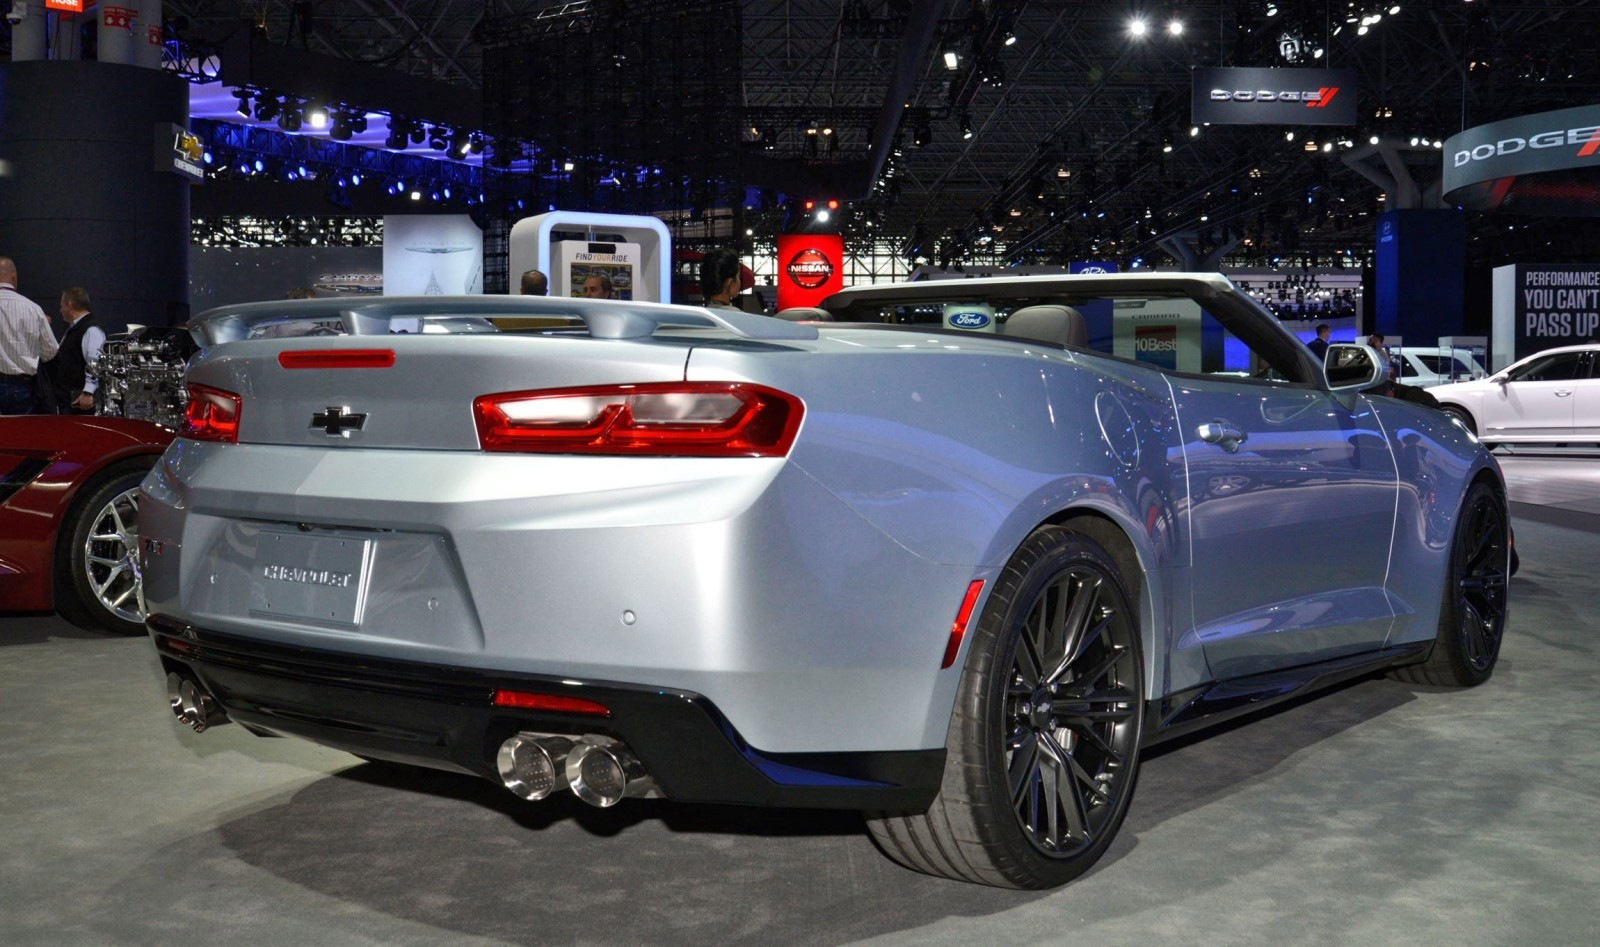 2017 chevrolet camaro zl1 convertible live photos tech details track video. Black Bedroom Furniture Sets. Home Design Ideas